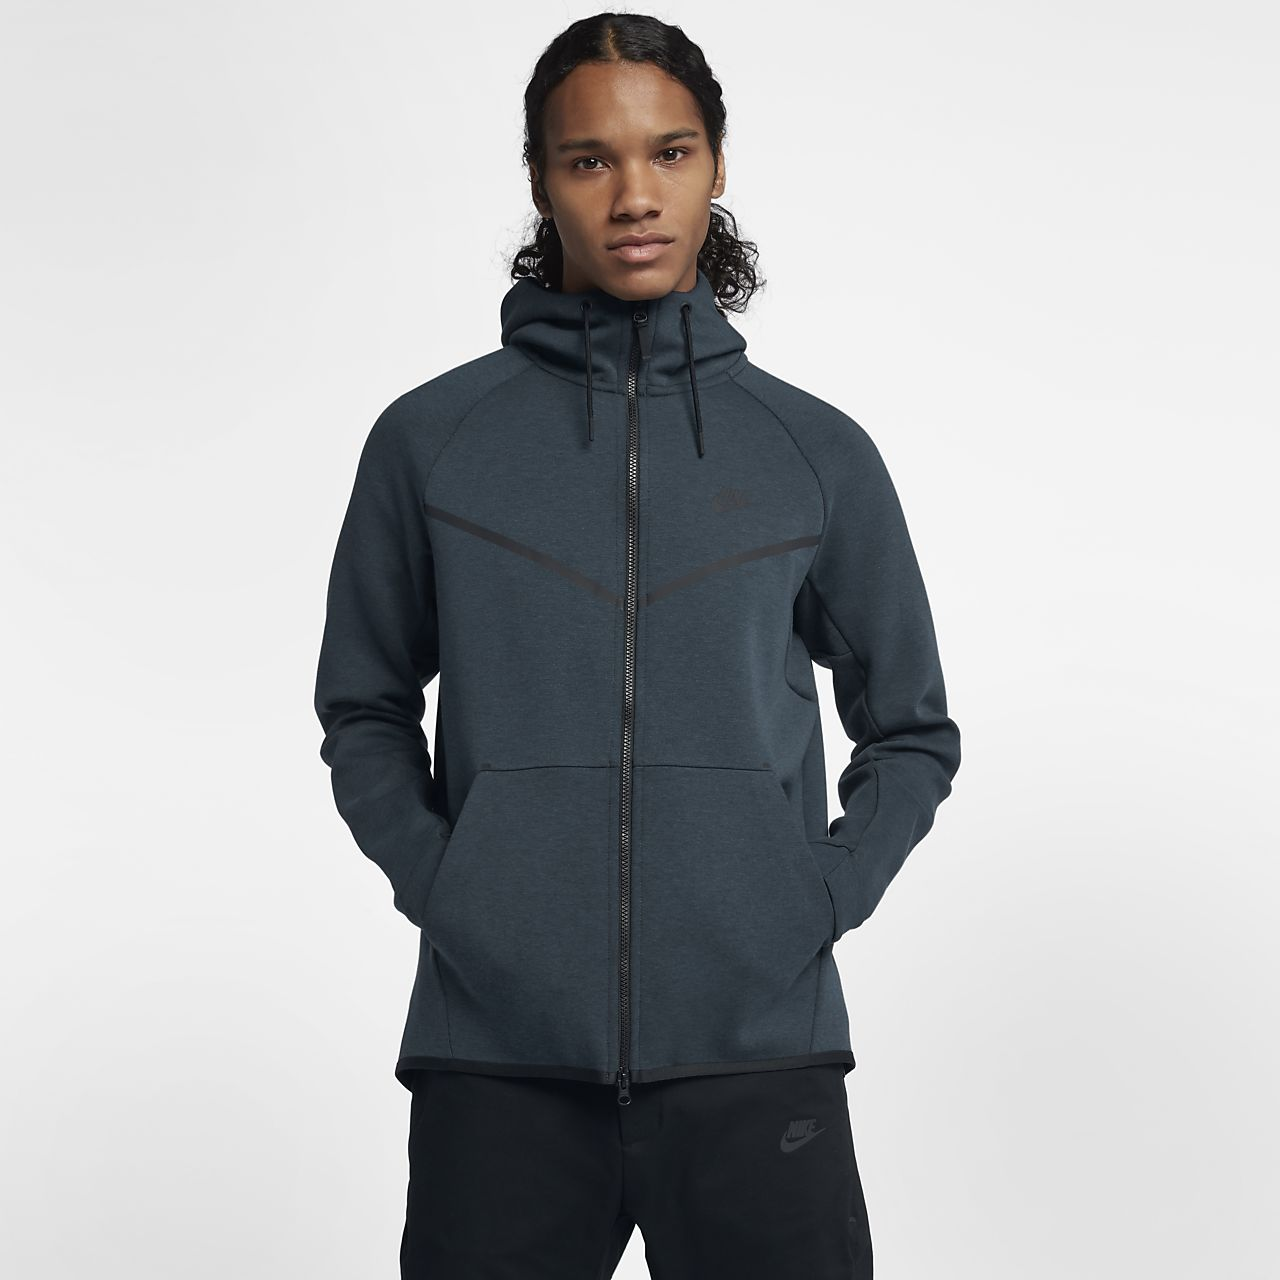 Cheap Really Sportswear Cotton-blend Tech Fleece Zip-up Hoodie Nike Shopping Online With Mastercard Buy Cheap Purchase Countdown Package Online Buy Cheap Really lepg85